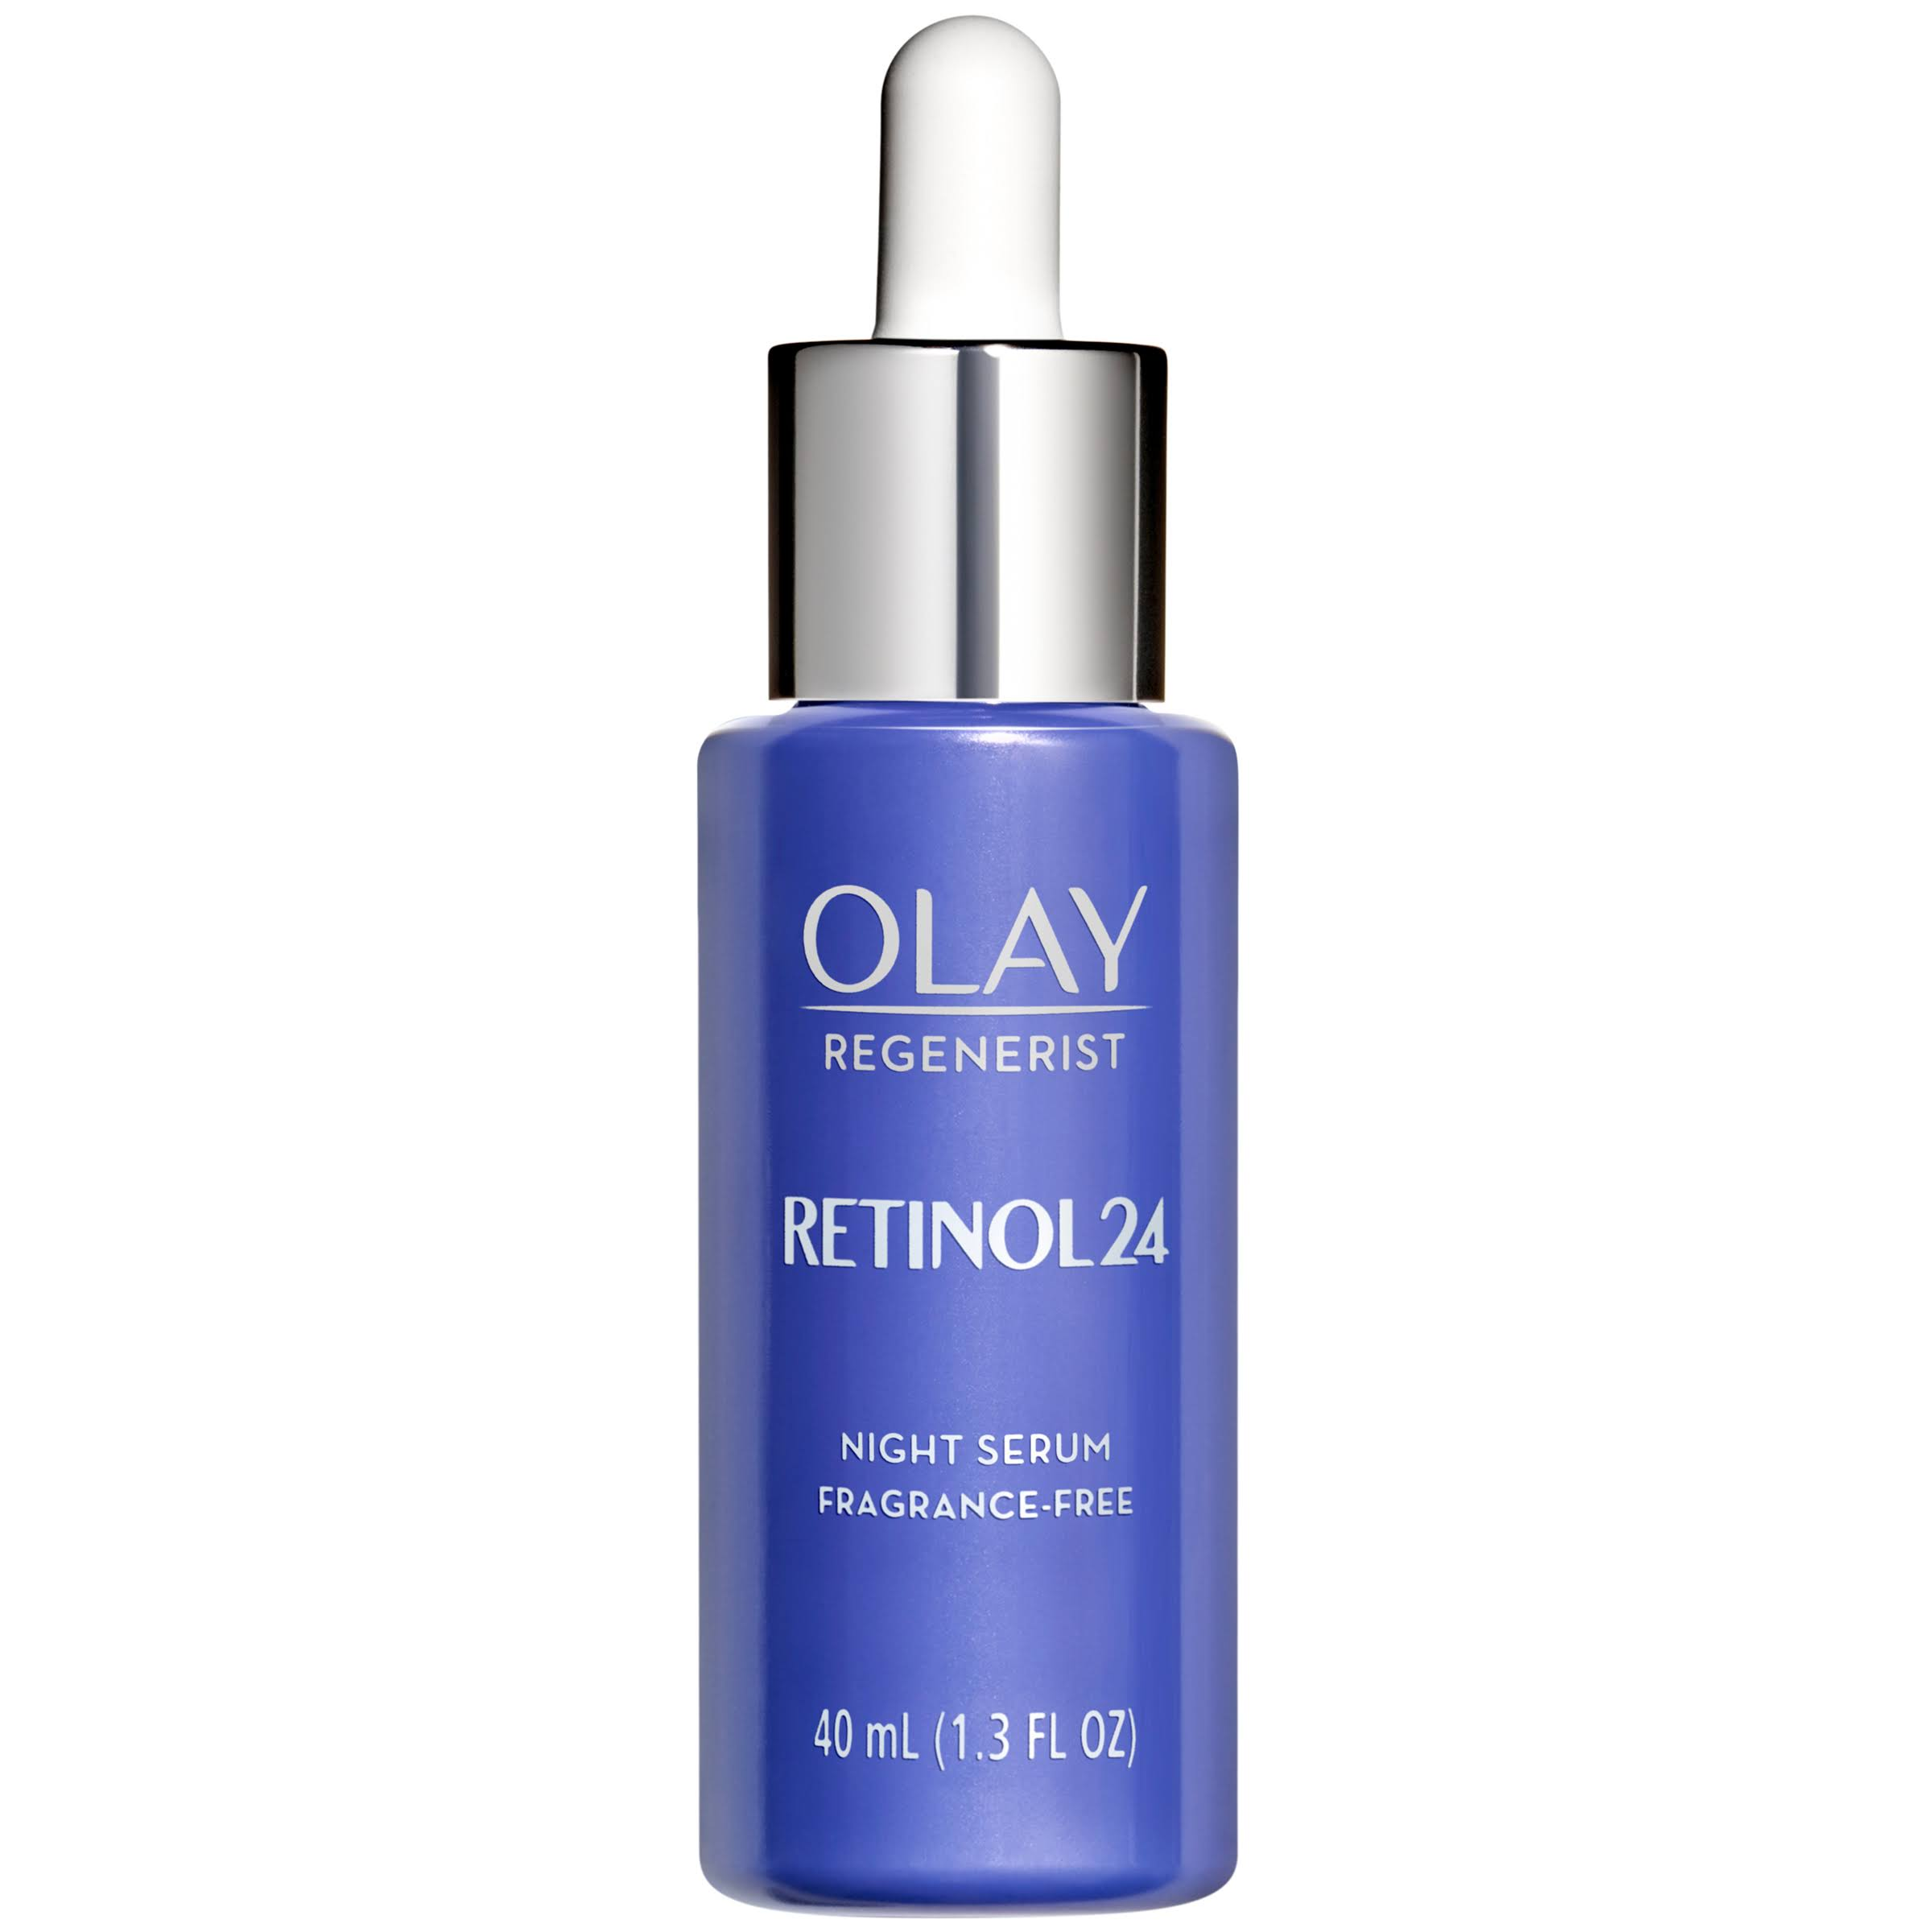 Olay Regenerist Retinol 24 Night Facial Serum - 1.3oz